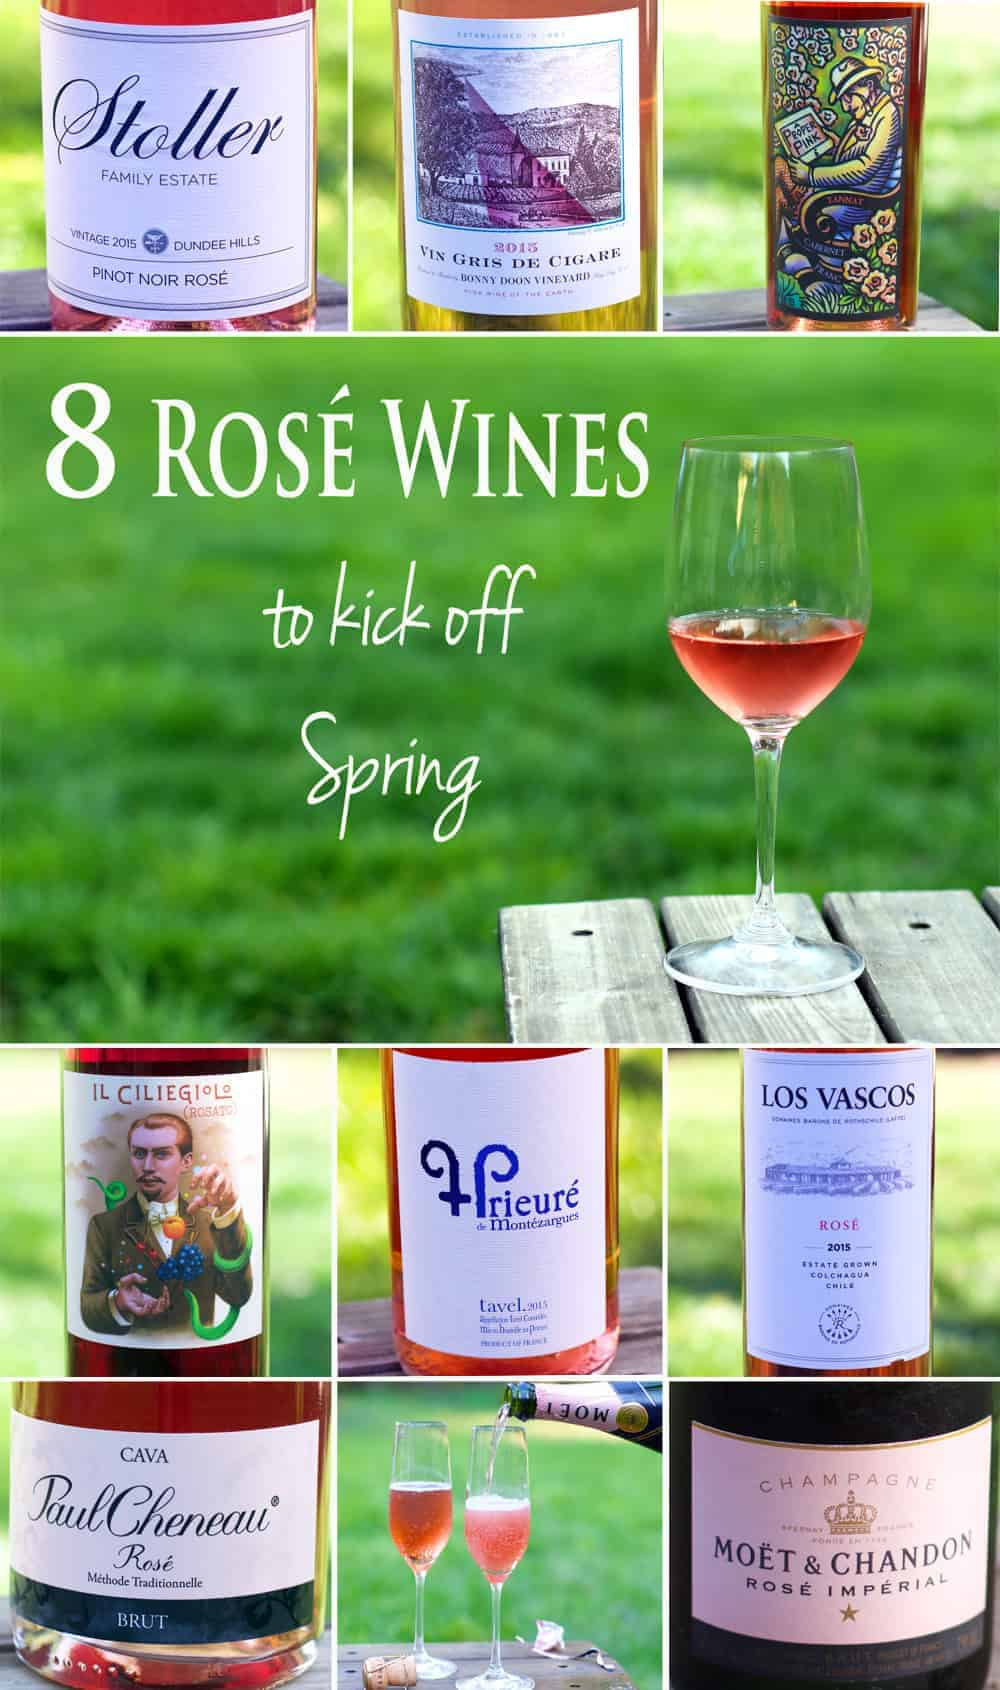 8 Rosé Wines to Kick off Spring 2016